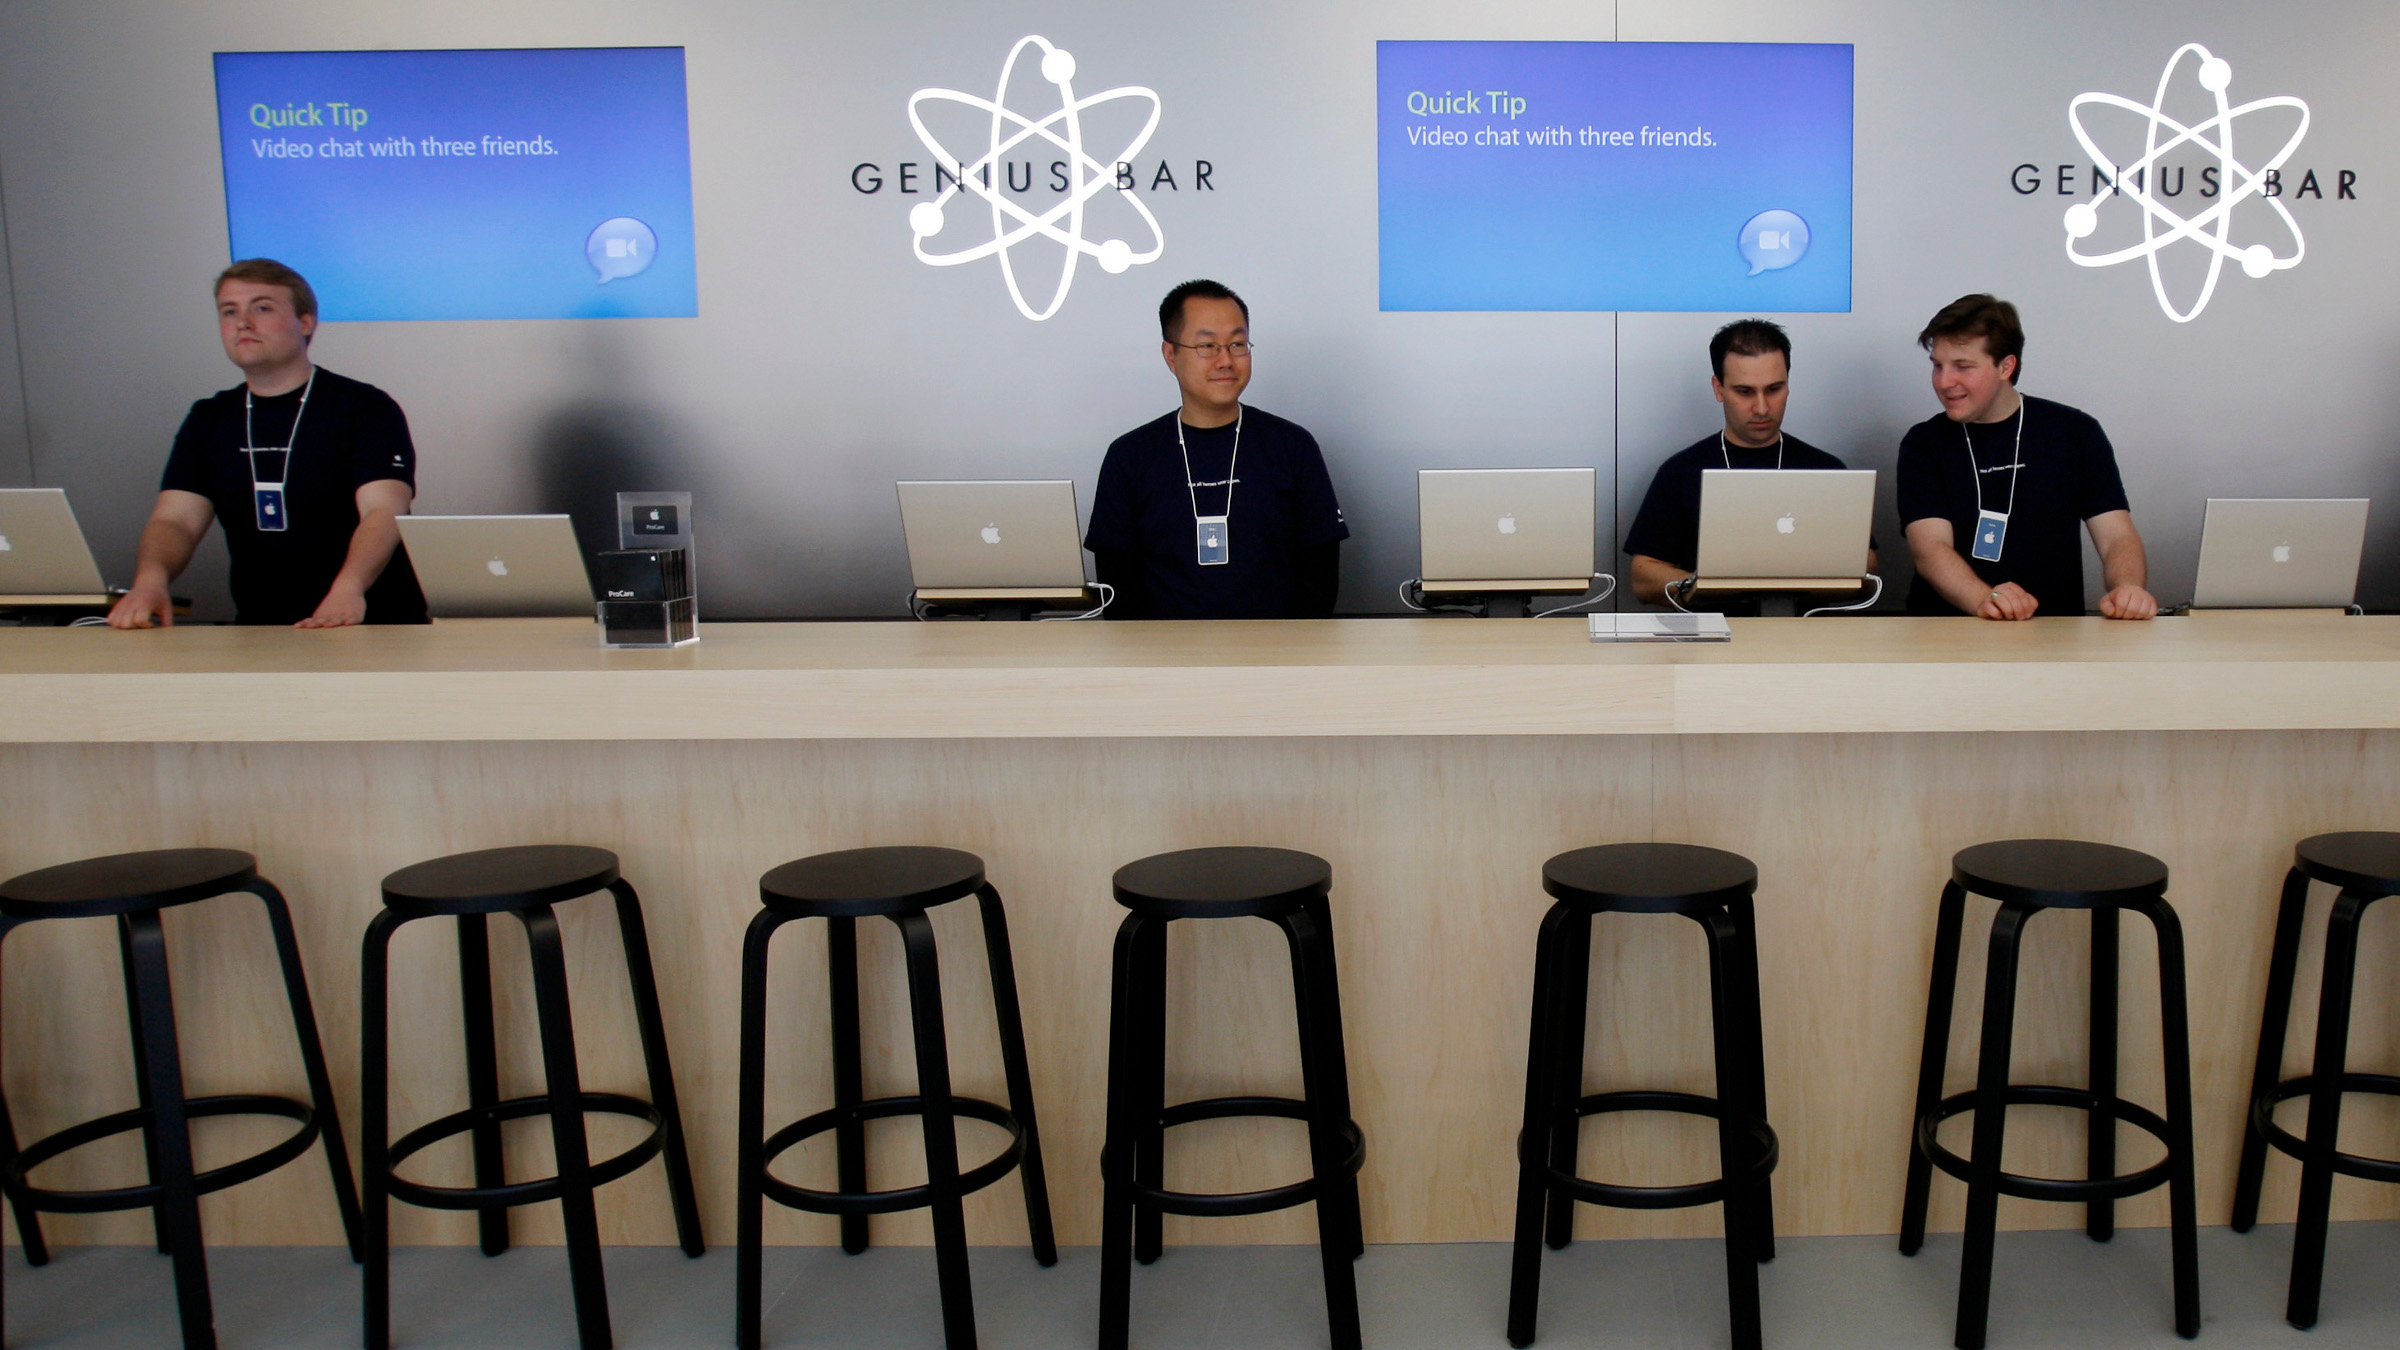 """Apple experts wait at the """"Genius Bar"""" in the new Apple store during the press preview in Boston, Massachusetts May 14, 2008. The store, Apple's largest in the U.S., opens May 15. (UNITED STATES)"""